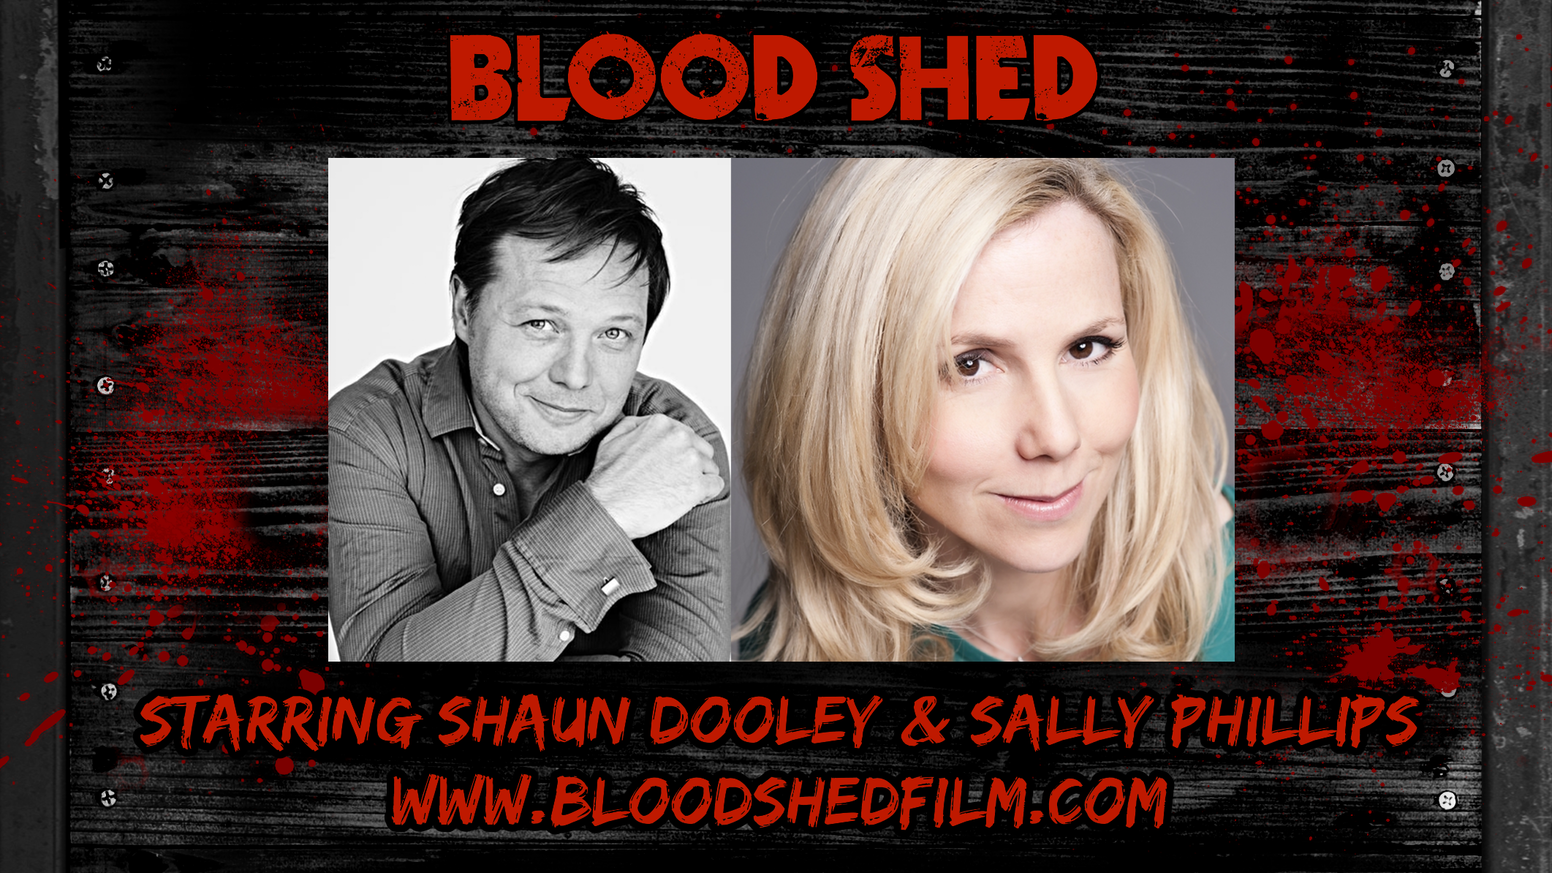 Blood Shed: Comedy horror short about a man-eating shed! by James